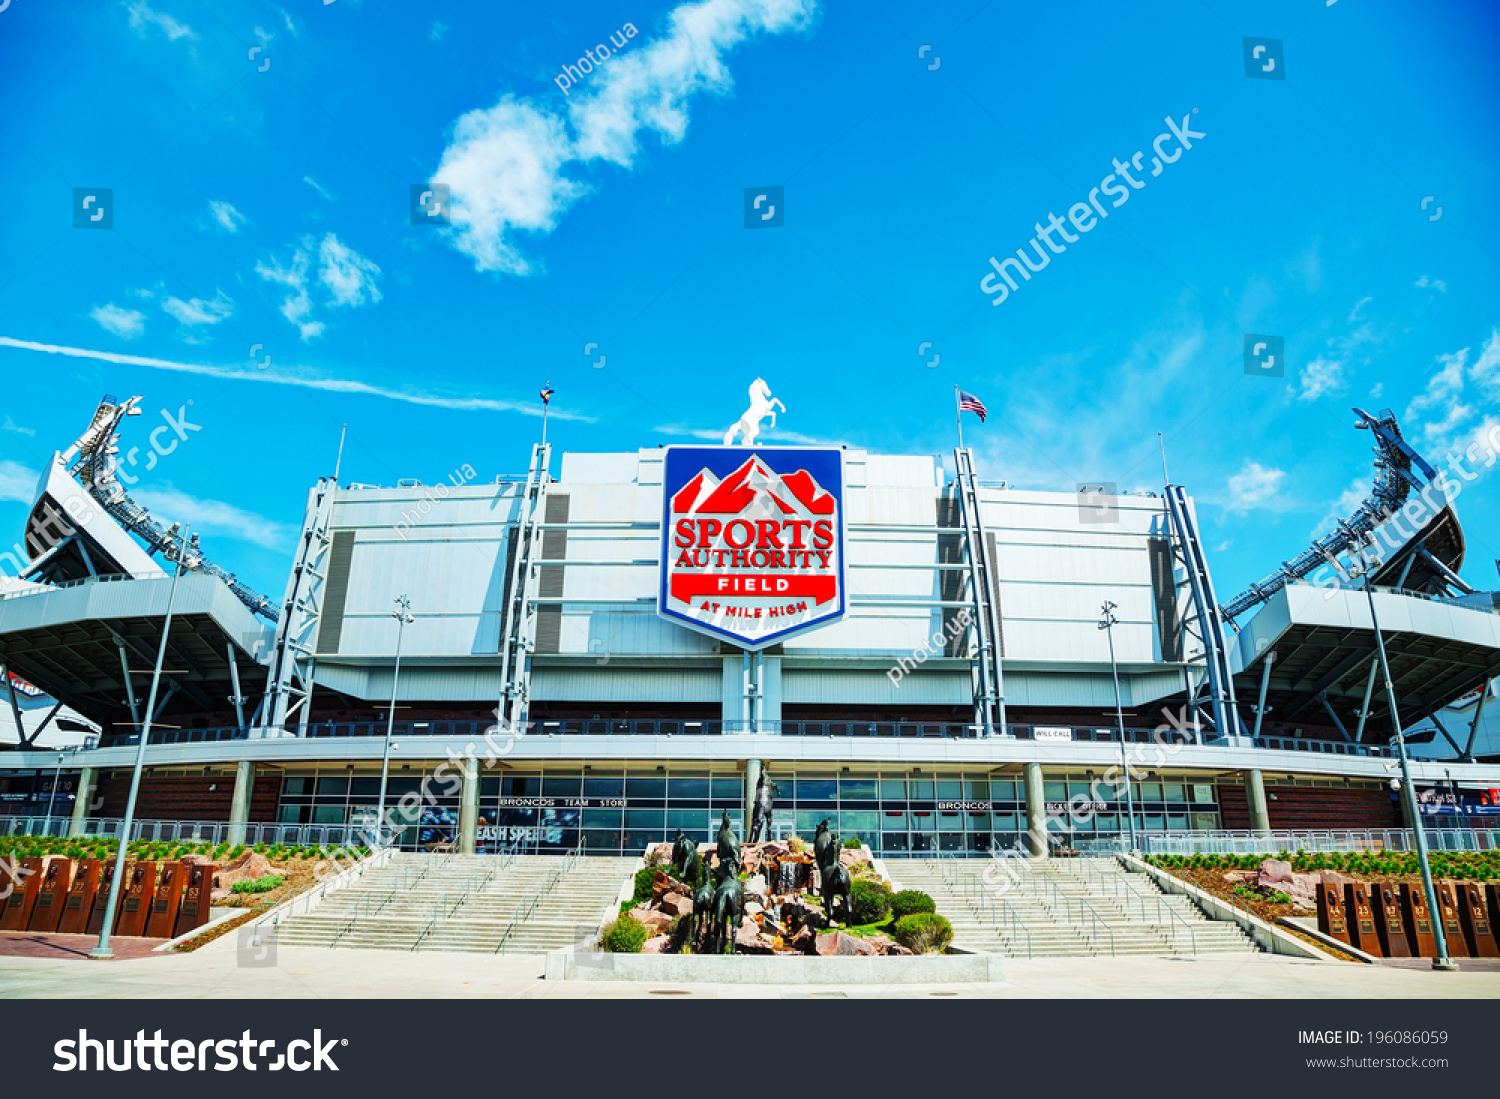 Sports Authority Field at Mile High in Denver on April 30, 2014 in Denver, Colo. (photo.ua/Shutterstock.com)